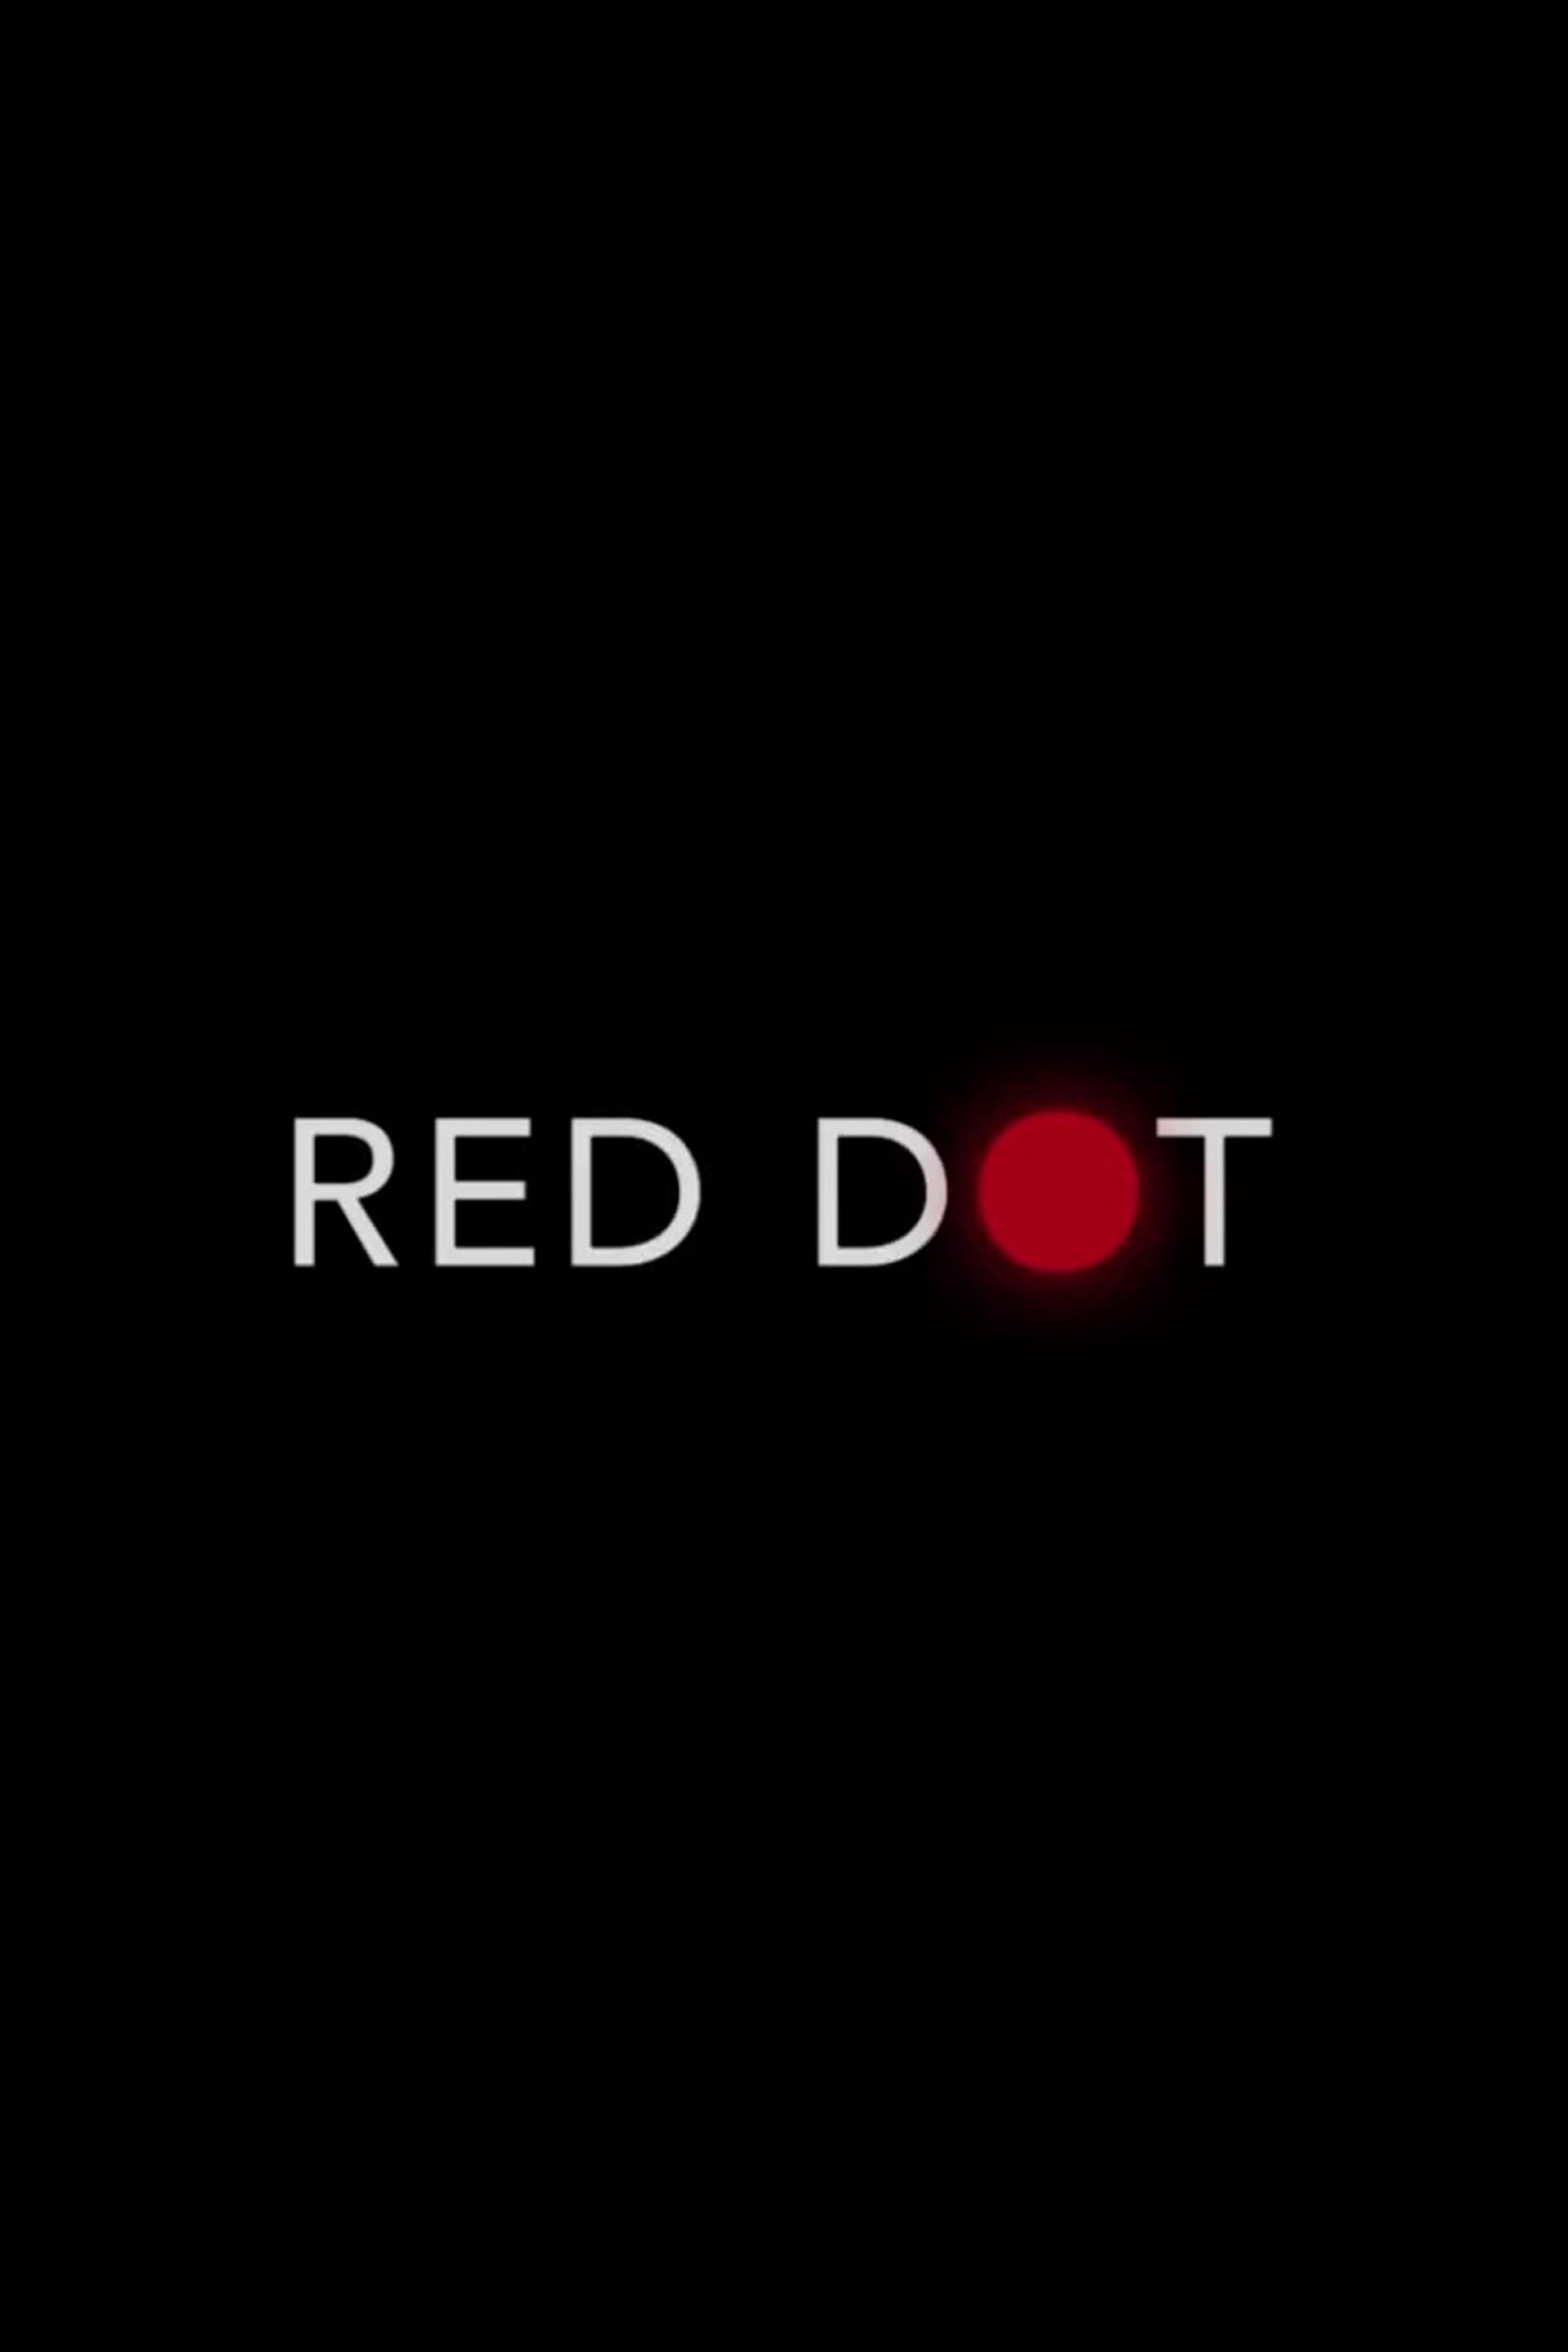 Voir Film Red Dot - Film (2021) streaming VF gratuit complet